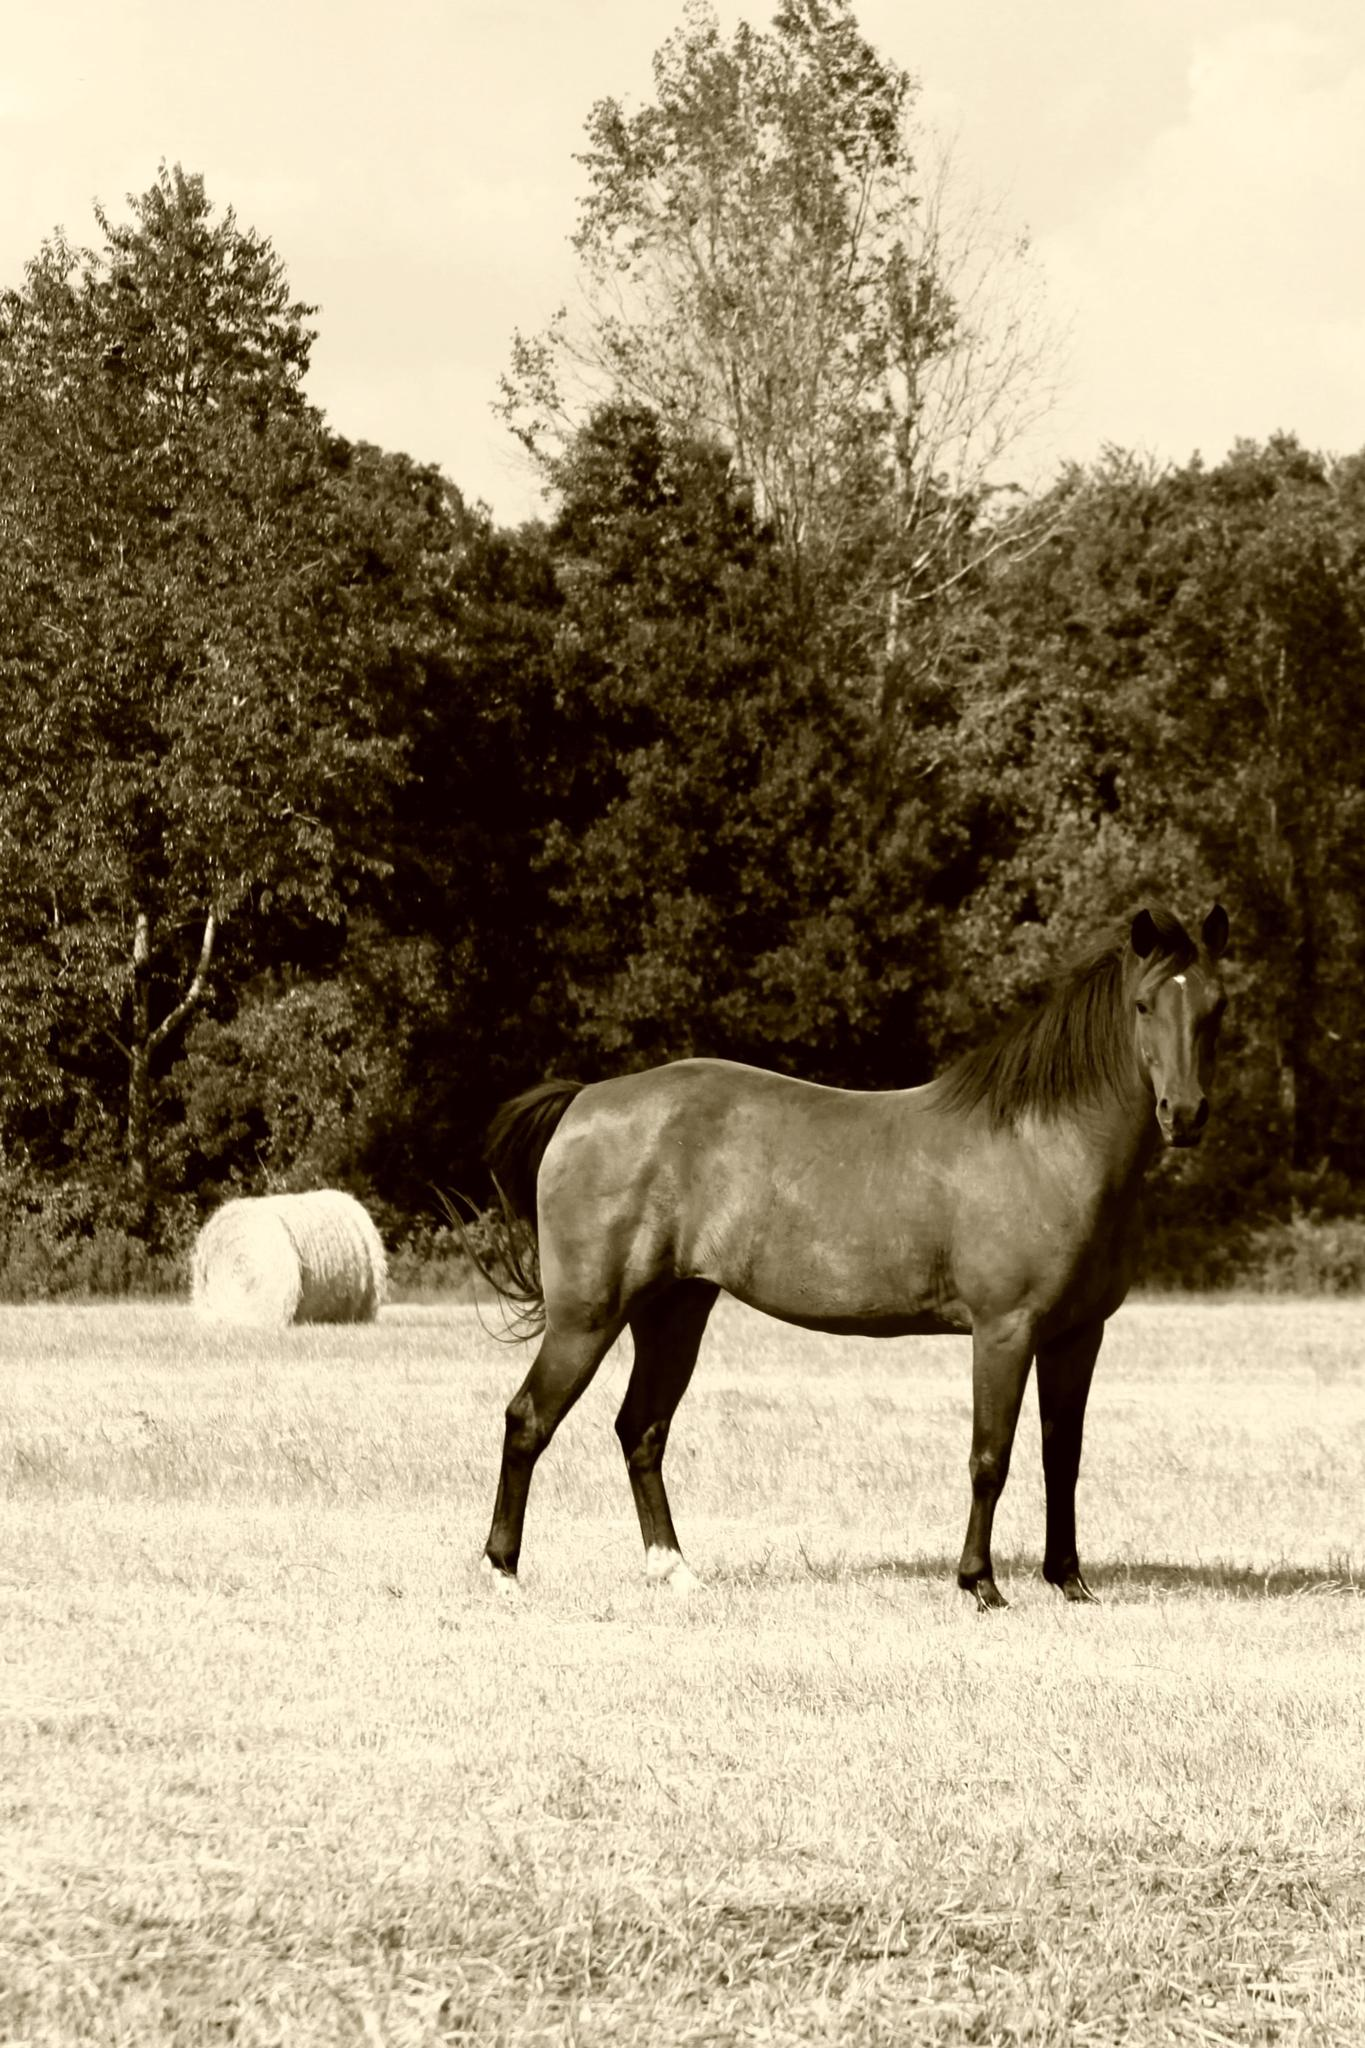 Our Bay Horse In The Hay Field by KimParrish